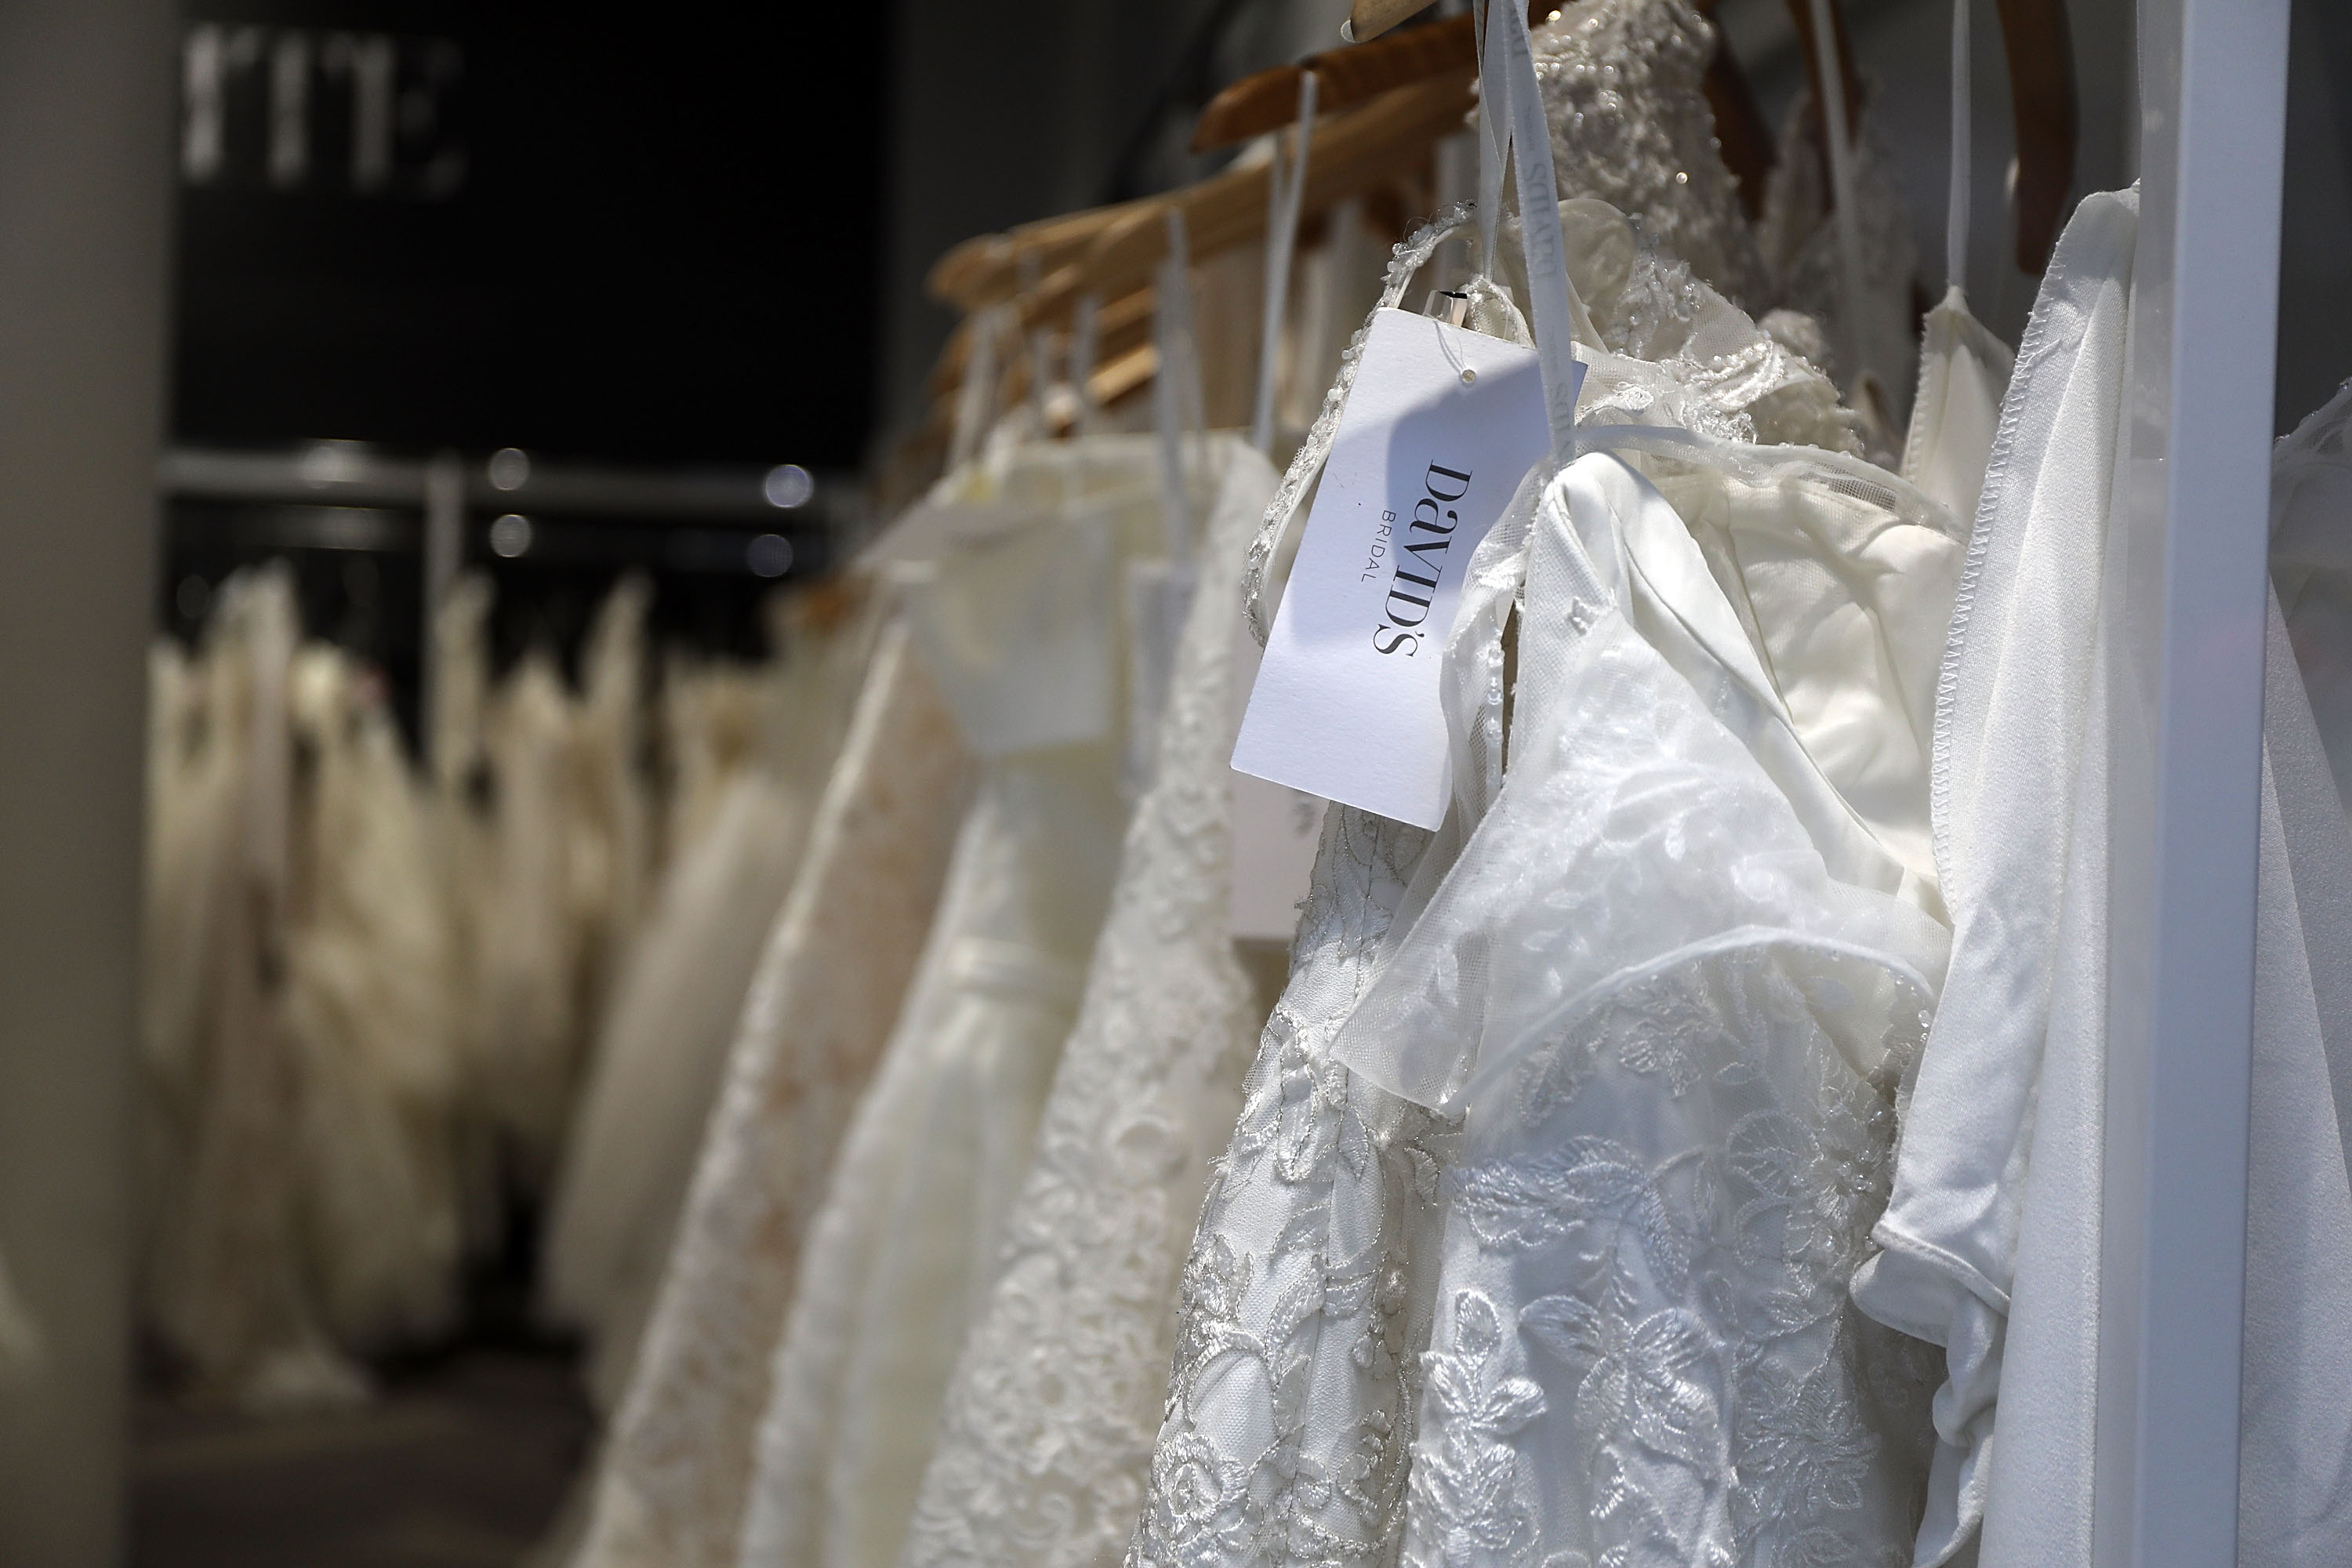 Bridal gowns could be in short supply for wedding season because of coronavirus